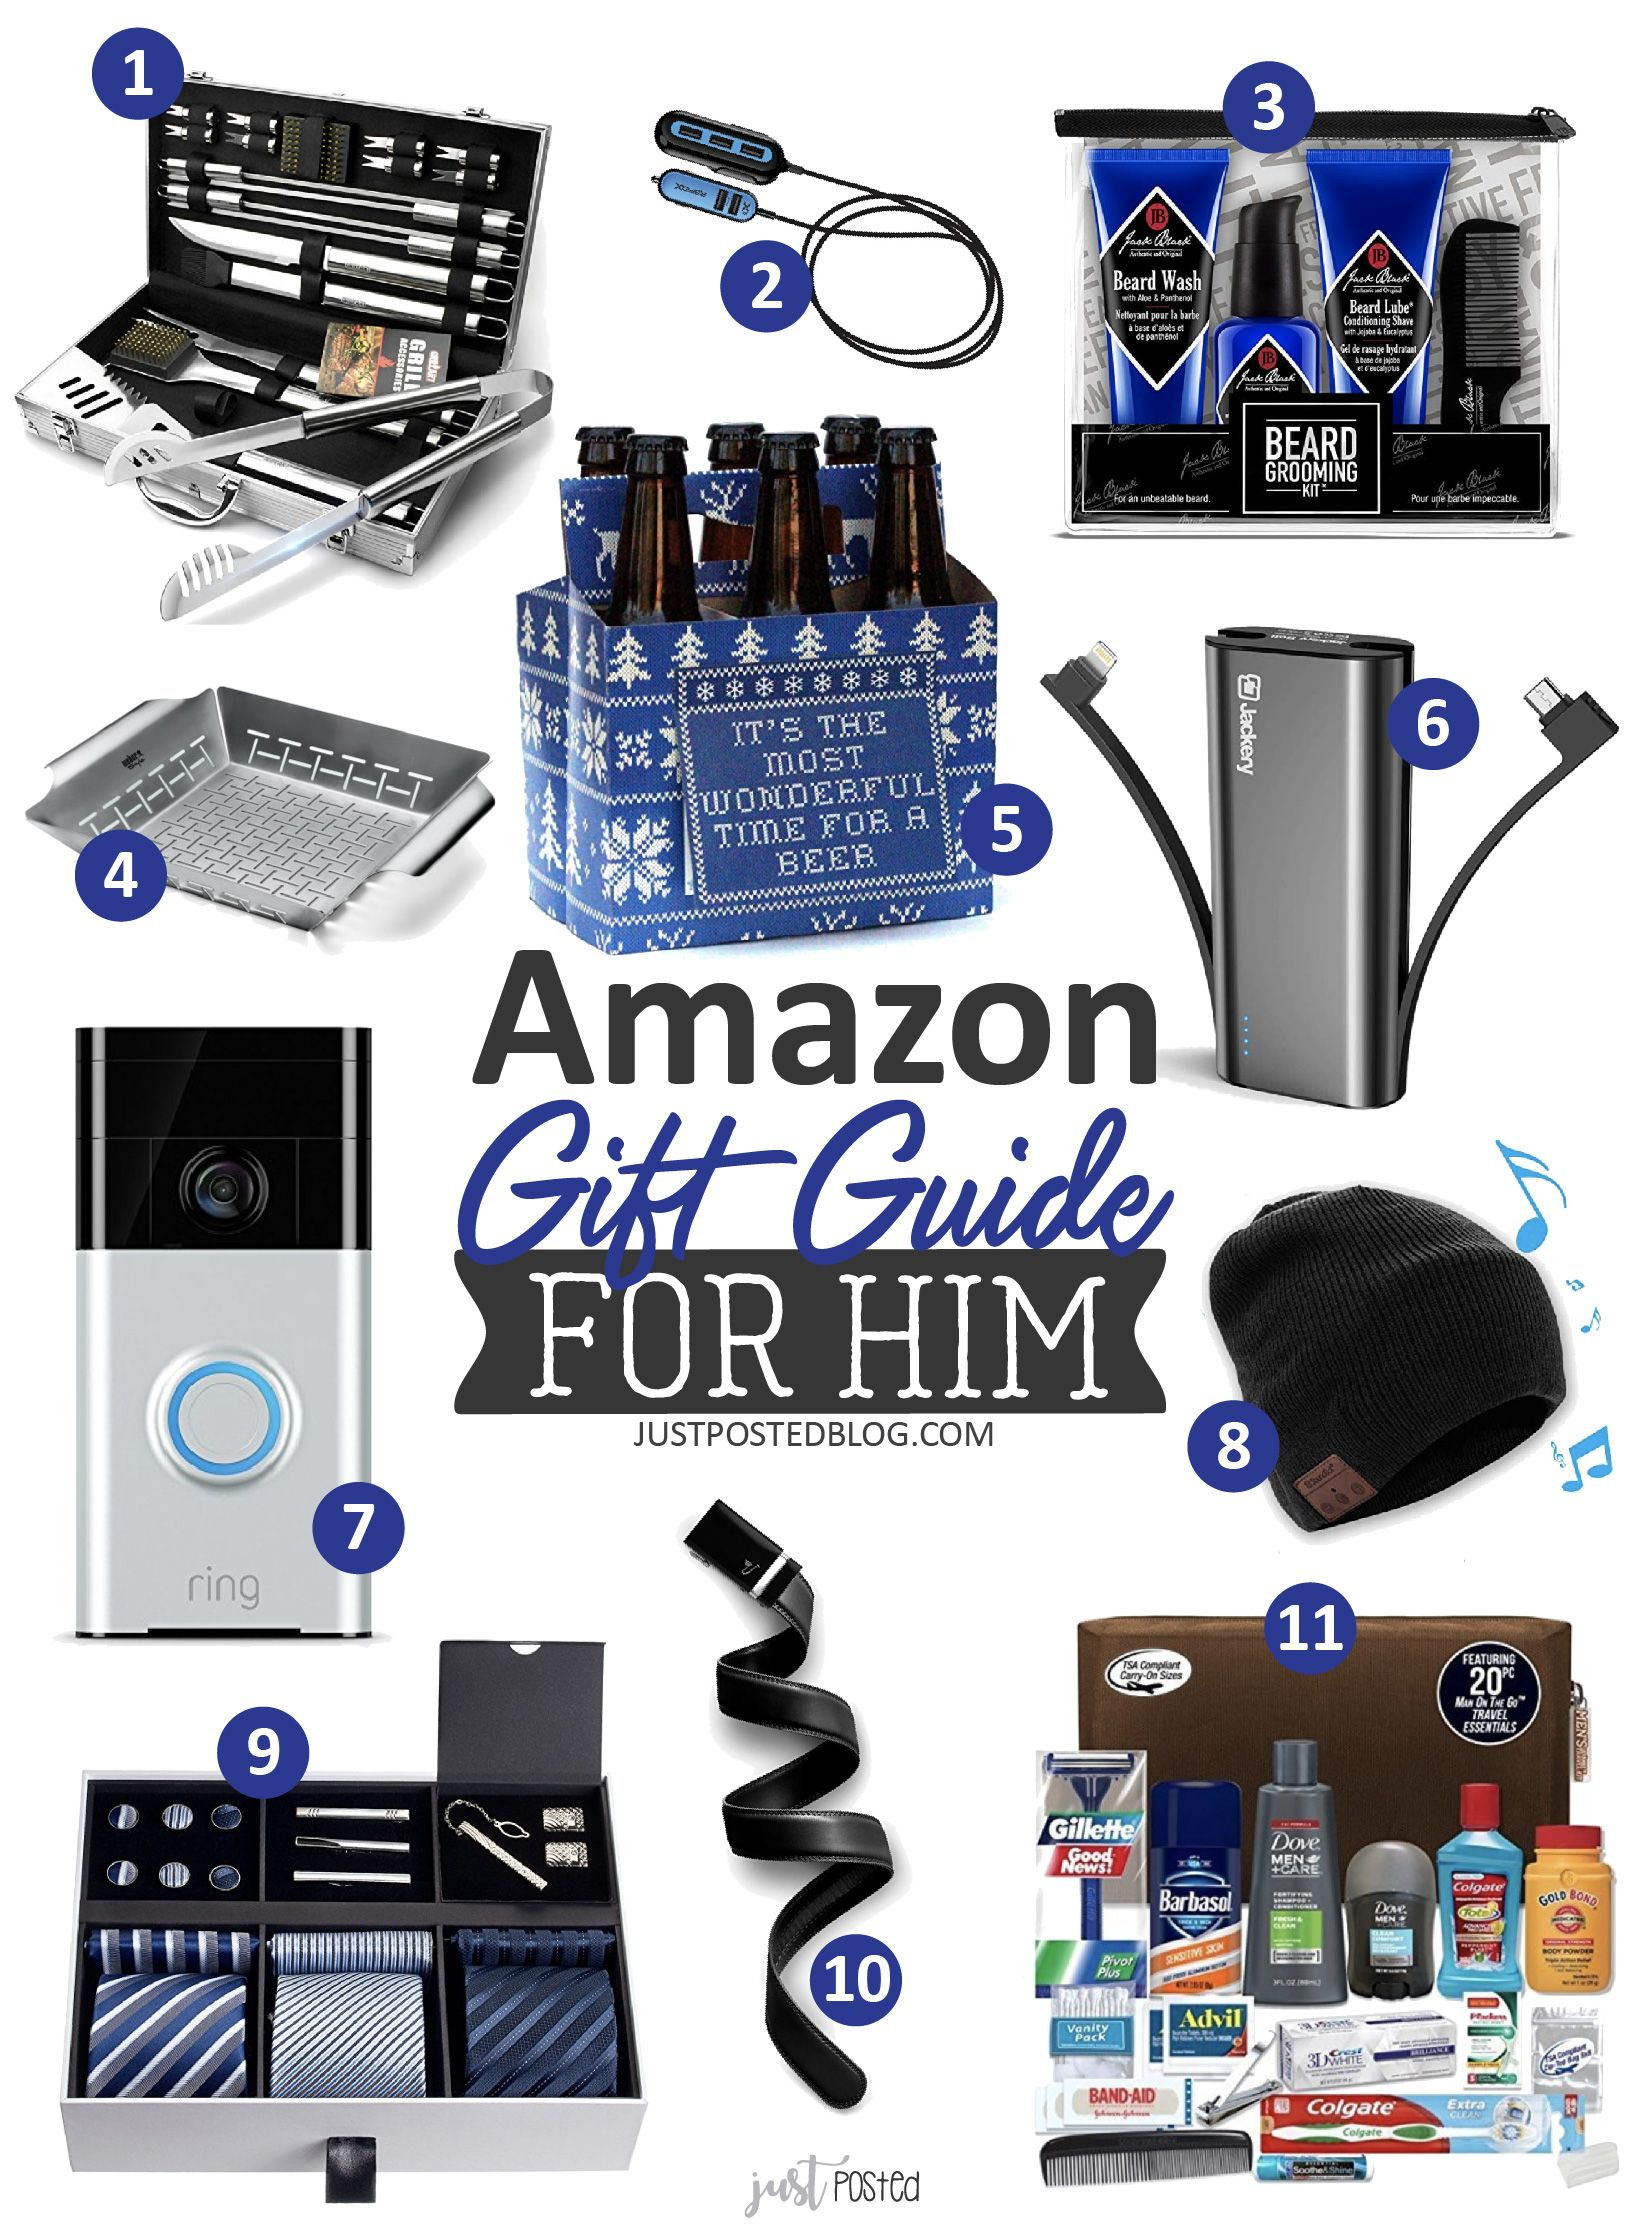 Amazon Gift Guide For Him Great List Of What To Buy On Amazon Gift Guide For Him Gifts For Brother In Law Christmas Gifts